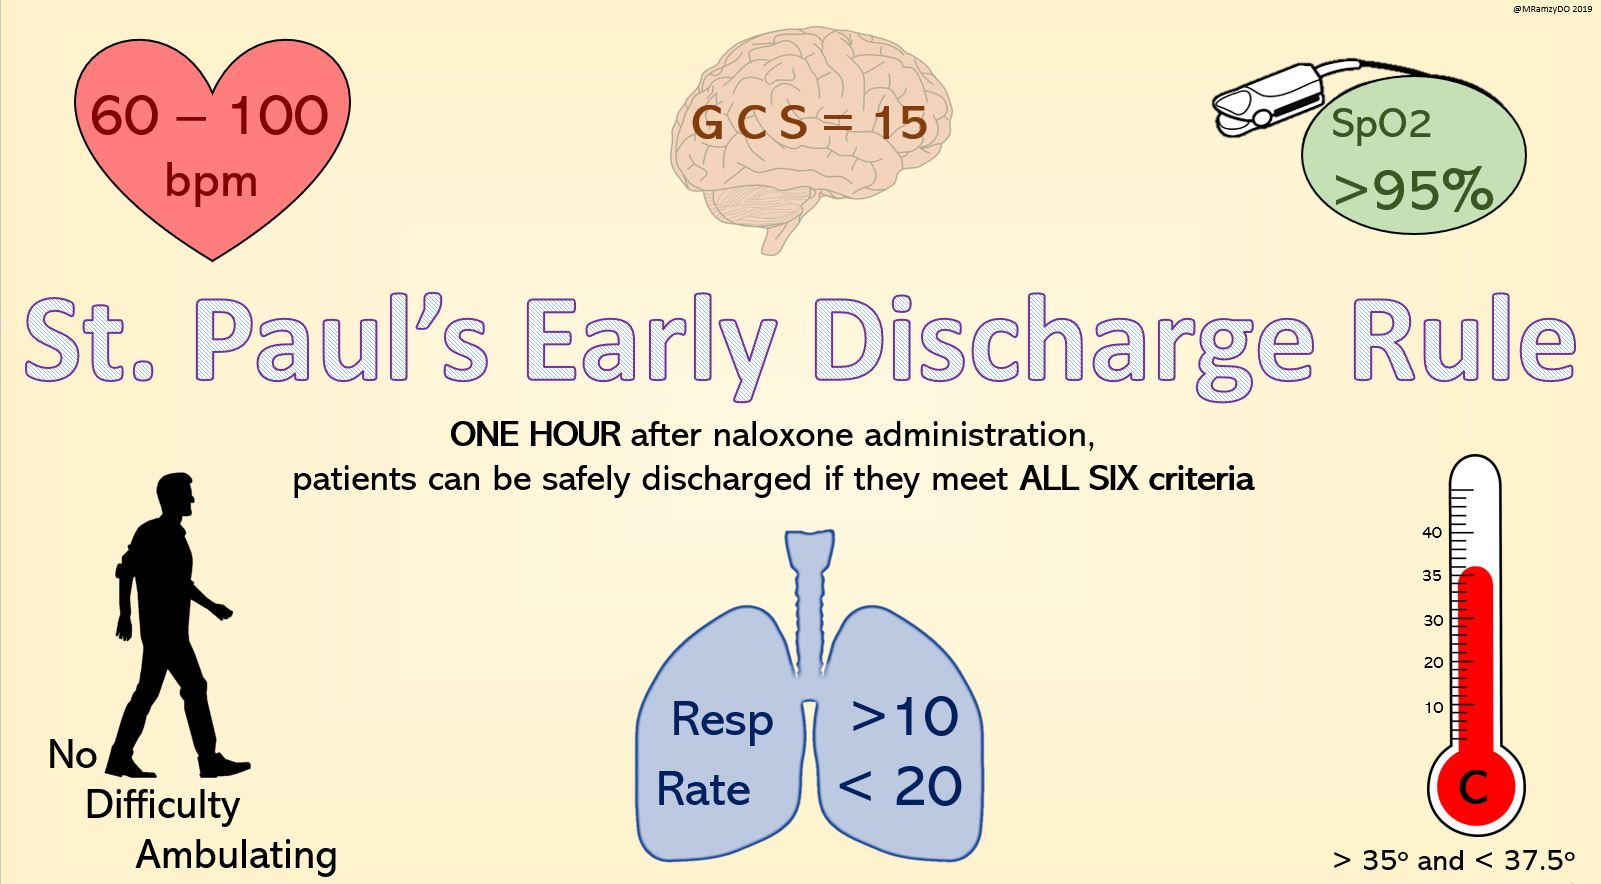 St Paul's Early Discharge Rule   ONE HOUR after naloxone administration, patients can be safely discharged if